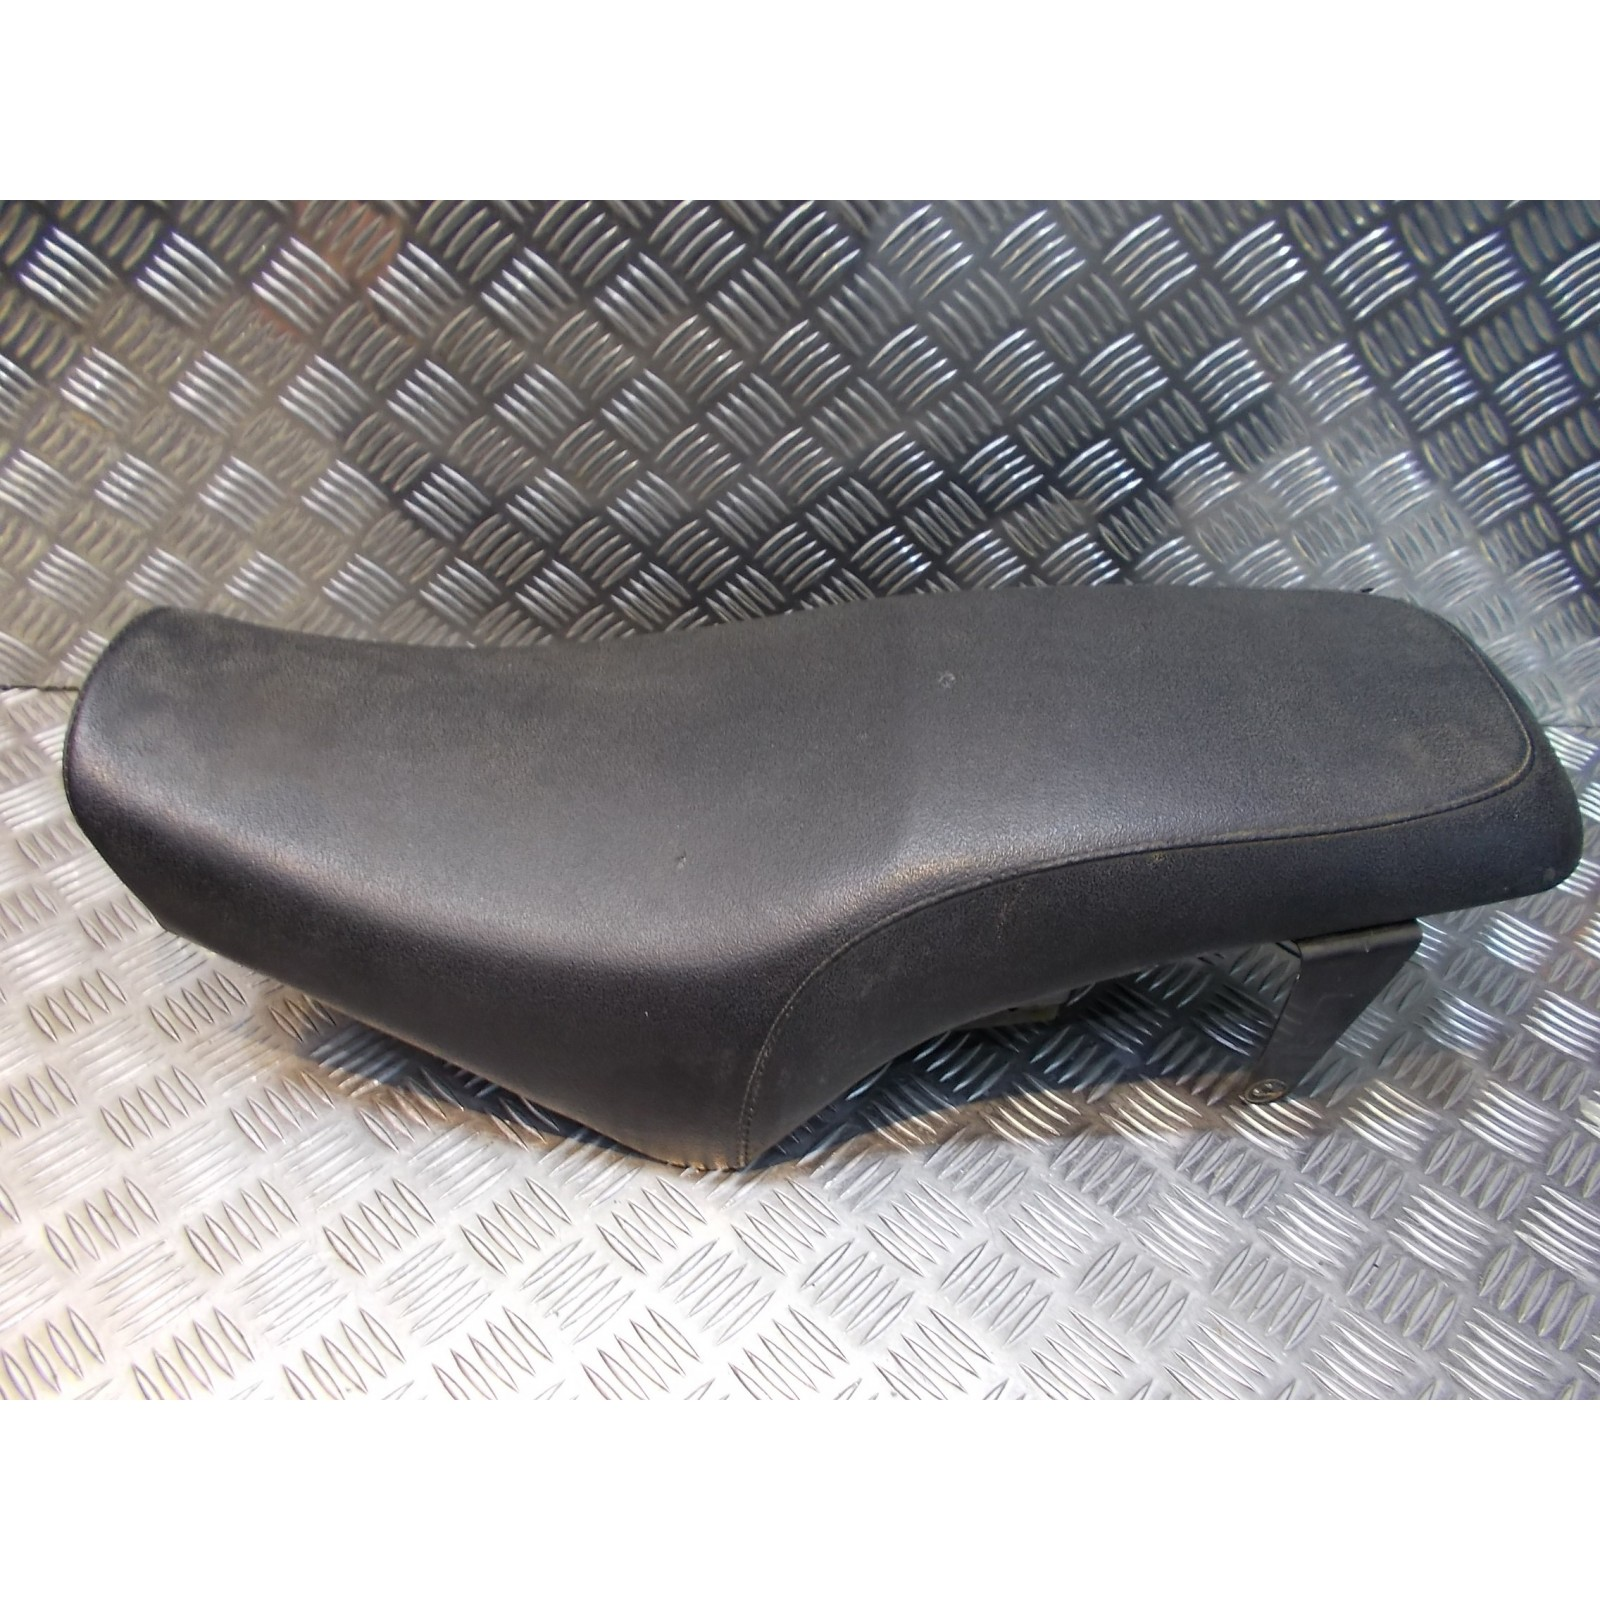 selle assise biplace moto revatto 125 roadster